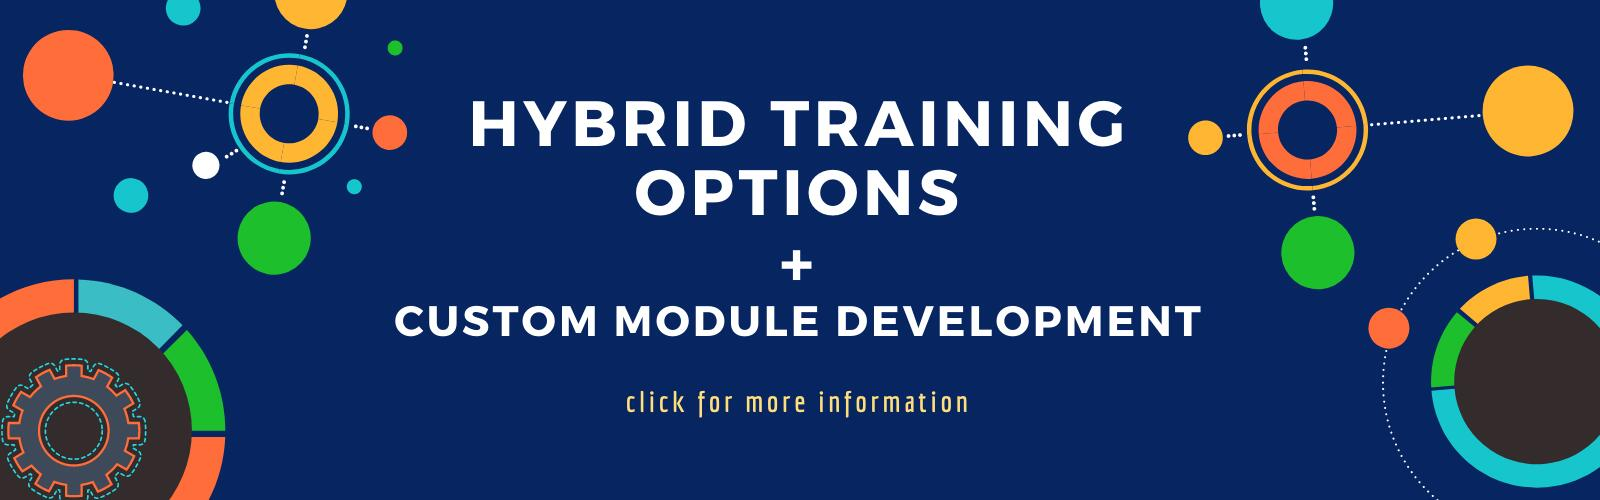 Abstract graphic to link to hybrid training courses